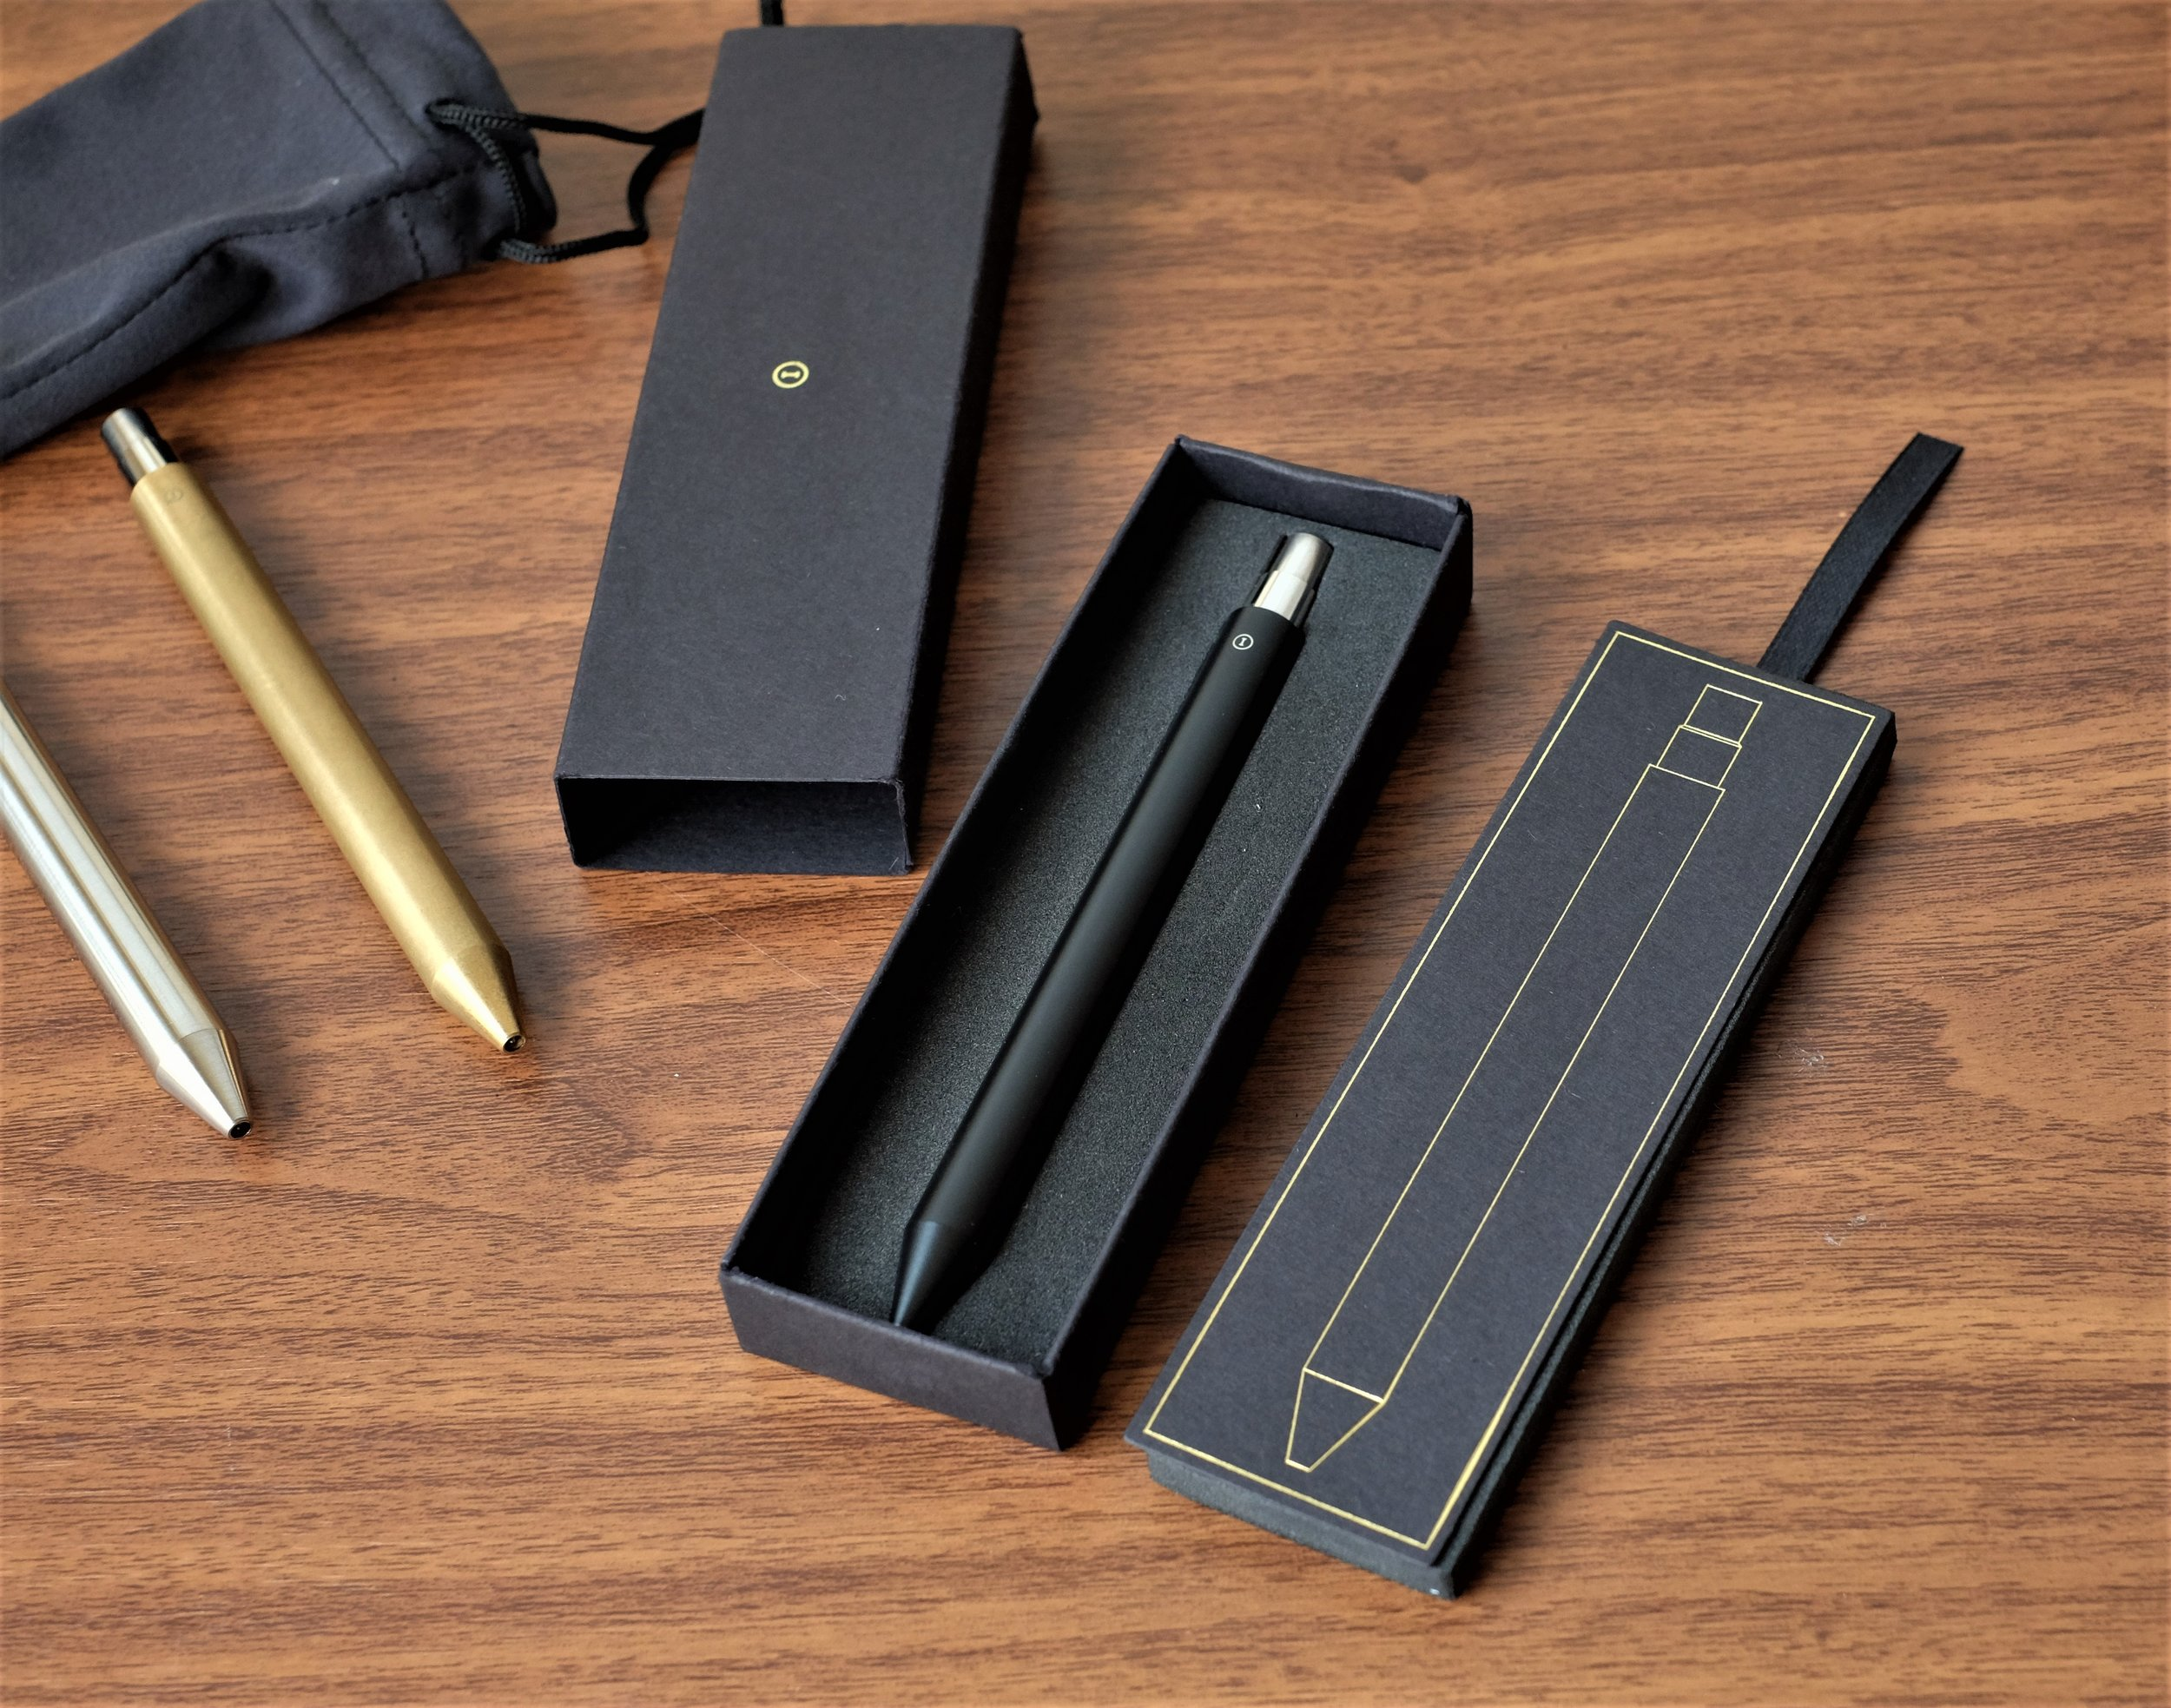 Inventery did a nice job on the packaging for the Mechanical Pen. Each pen arrives snug in a foam-lined box and slipcover, along with a microfiber drawstring bag.